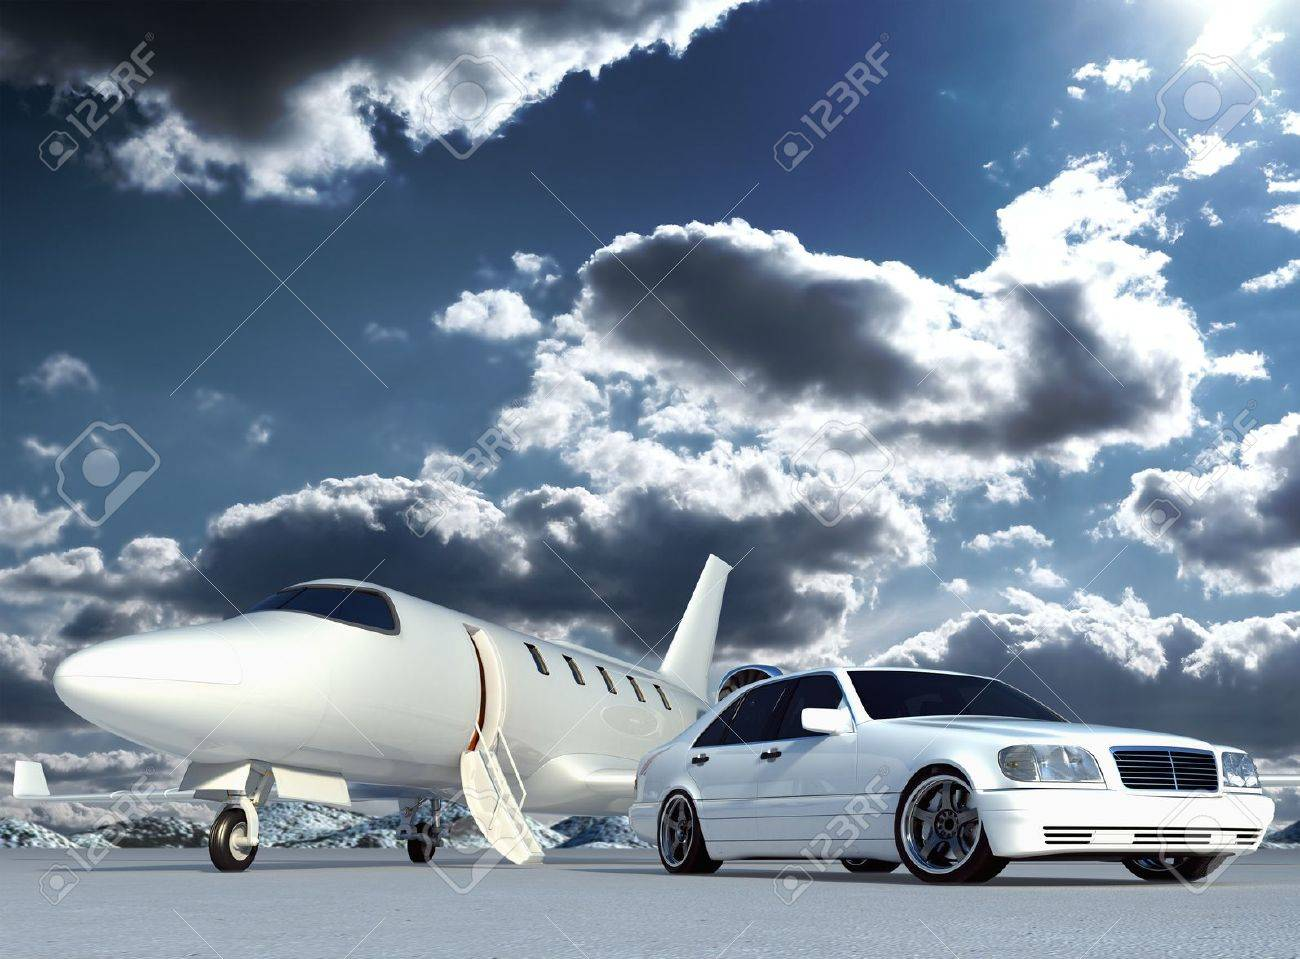 Cg Plane And Car Stock Photo, Picture And Royalty Free Image. Image